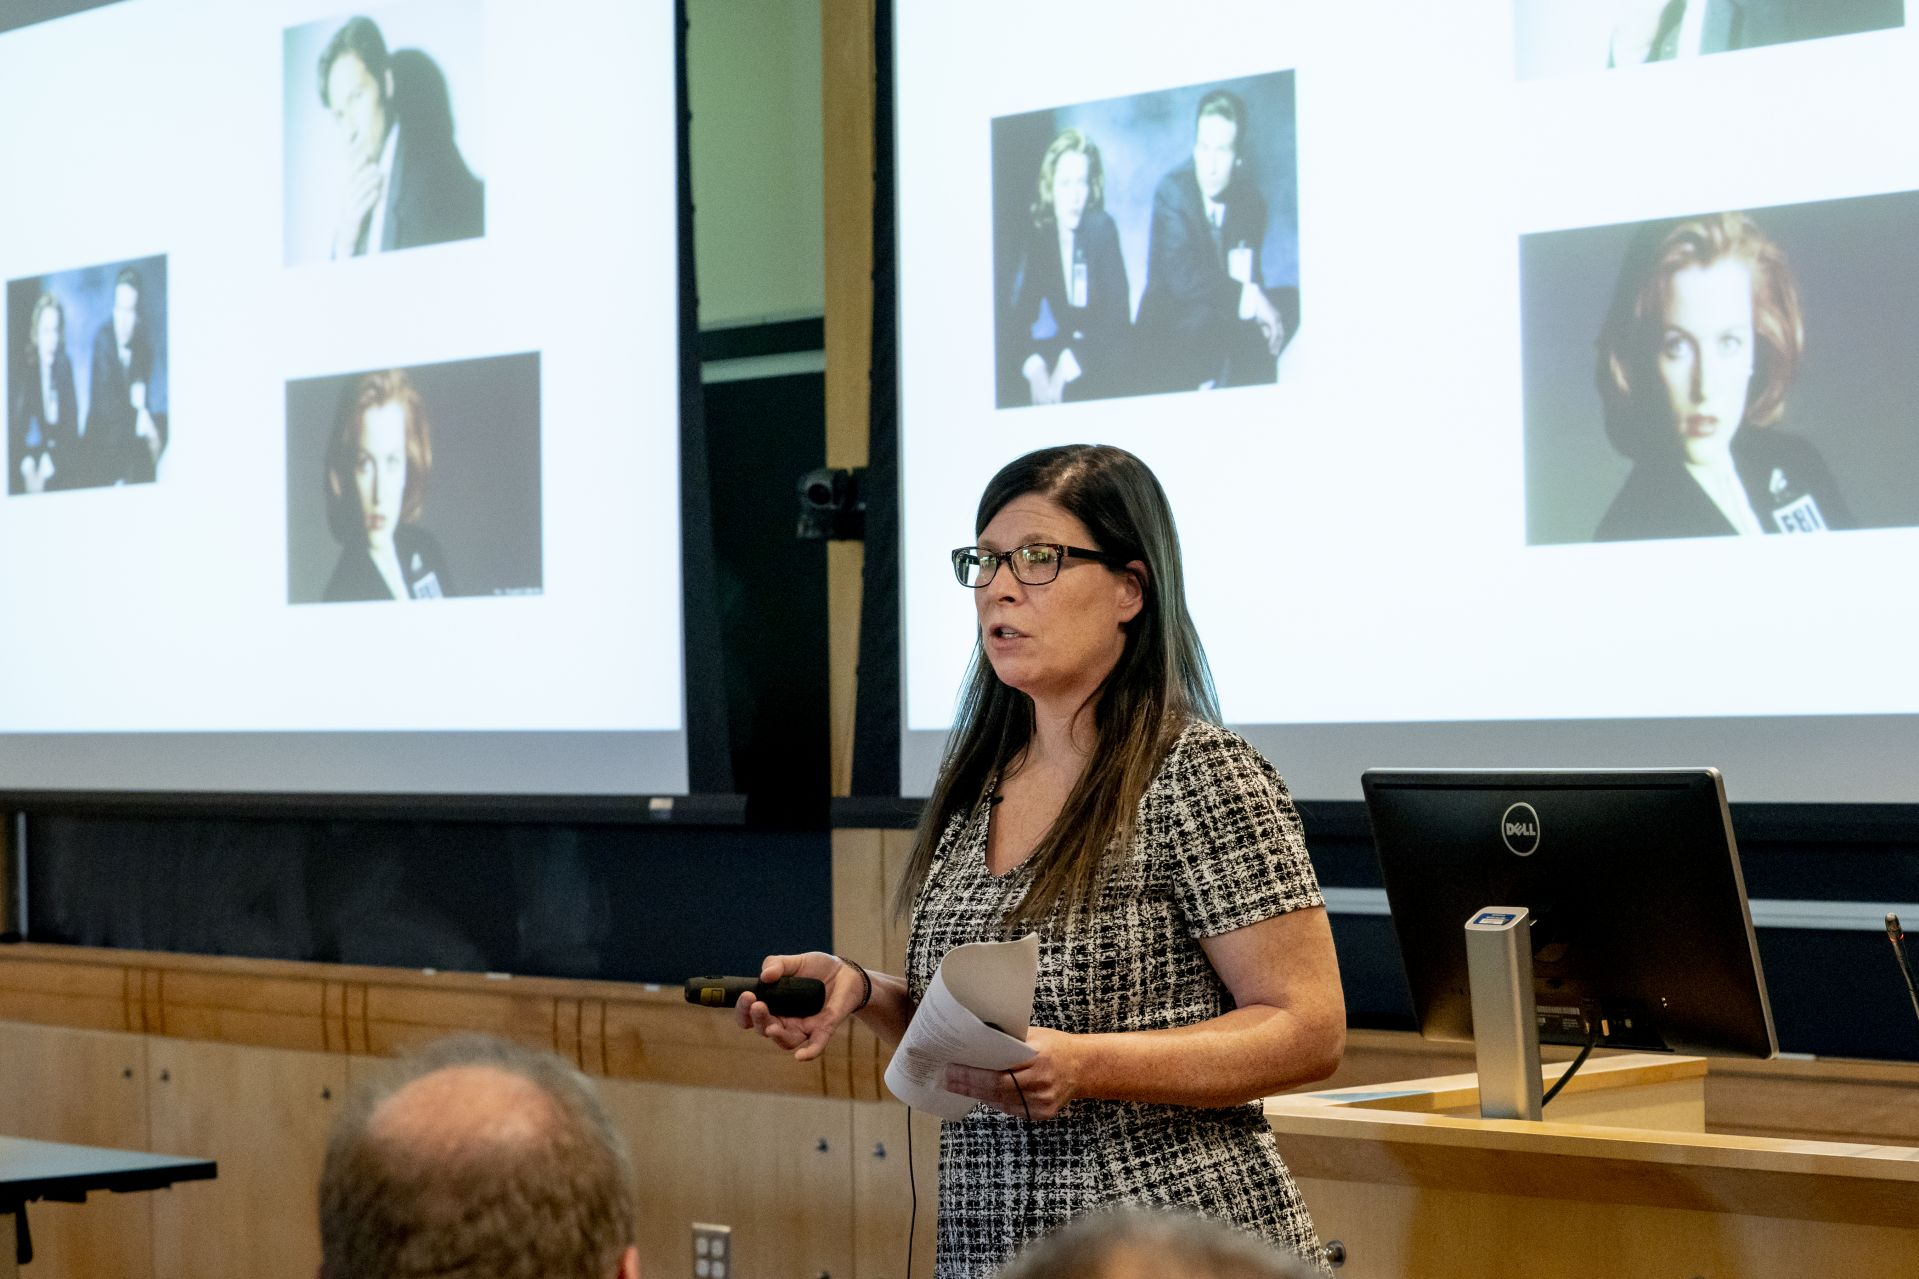 """This place has changed my life and it will change yours...Now, let's talk about conspiracy theories and aliens!"". After receiving her 2019 Ruth M. and Robert H. Kroepsch Award for Excellence in Teaching, Associate Professor of Rhetoric, Film, and Screen Studies Stephanie Kelley-Romano kicked off the 2019 Kroepsch Lecture on Sept. 19 with her characteristic warmth and wit. . Praised as a teacher who's exacting, empathetic, authentic — and passionate about her field, Kelley-Romano is known at Bates and beyond for her professional focus on topics in the popular consciousness — the rhetoric of television, conspiracy theories, and abductions by space aliens, to name a few. Her biennial course on presidential campaign rhetoric is built around a mock campaign that affords an intensely hands-on, multidisciplinary experience for students. . The award honors faculty for their outstanding performance as teachers. Each year a committee of previous recipients selects the Kroepsch honoree from a list of nominations by students. An endowment established in 1985 by Robert Kroepsch '33 funds the endowment."